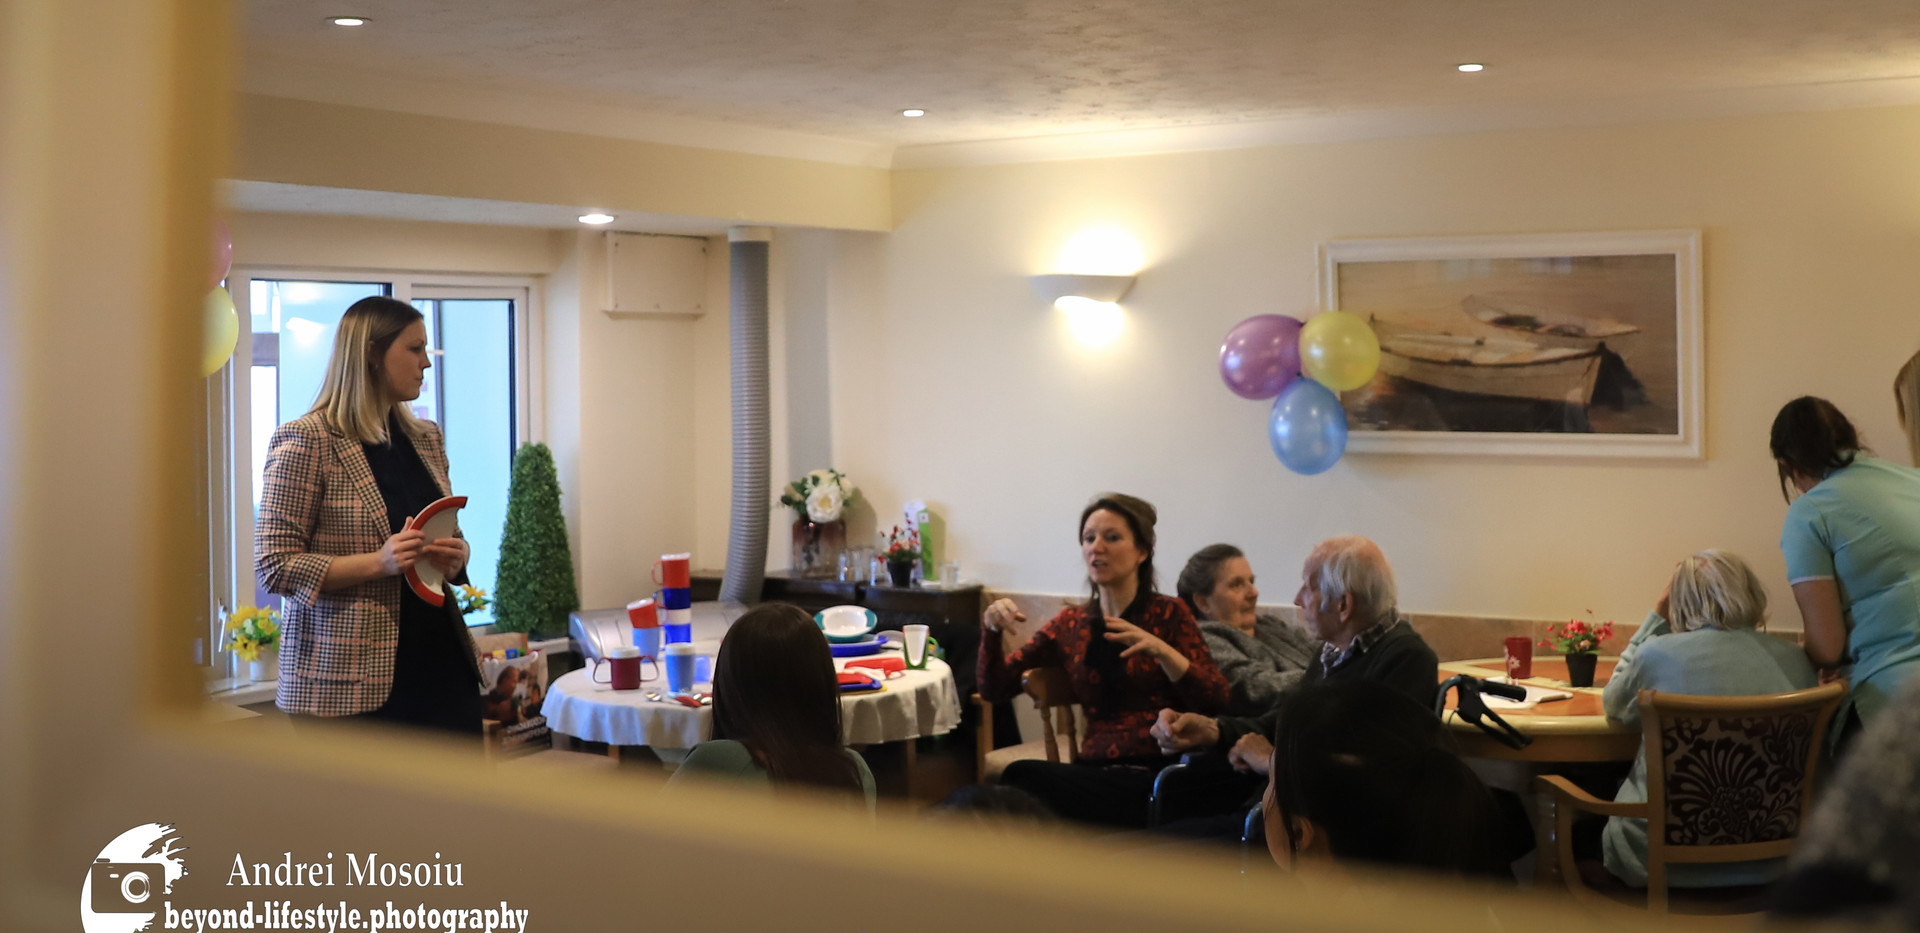 The Oasis Care Home